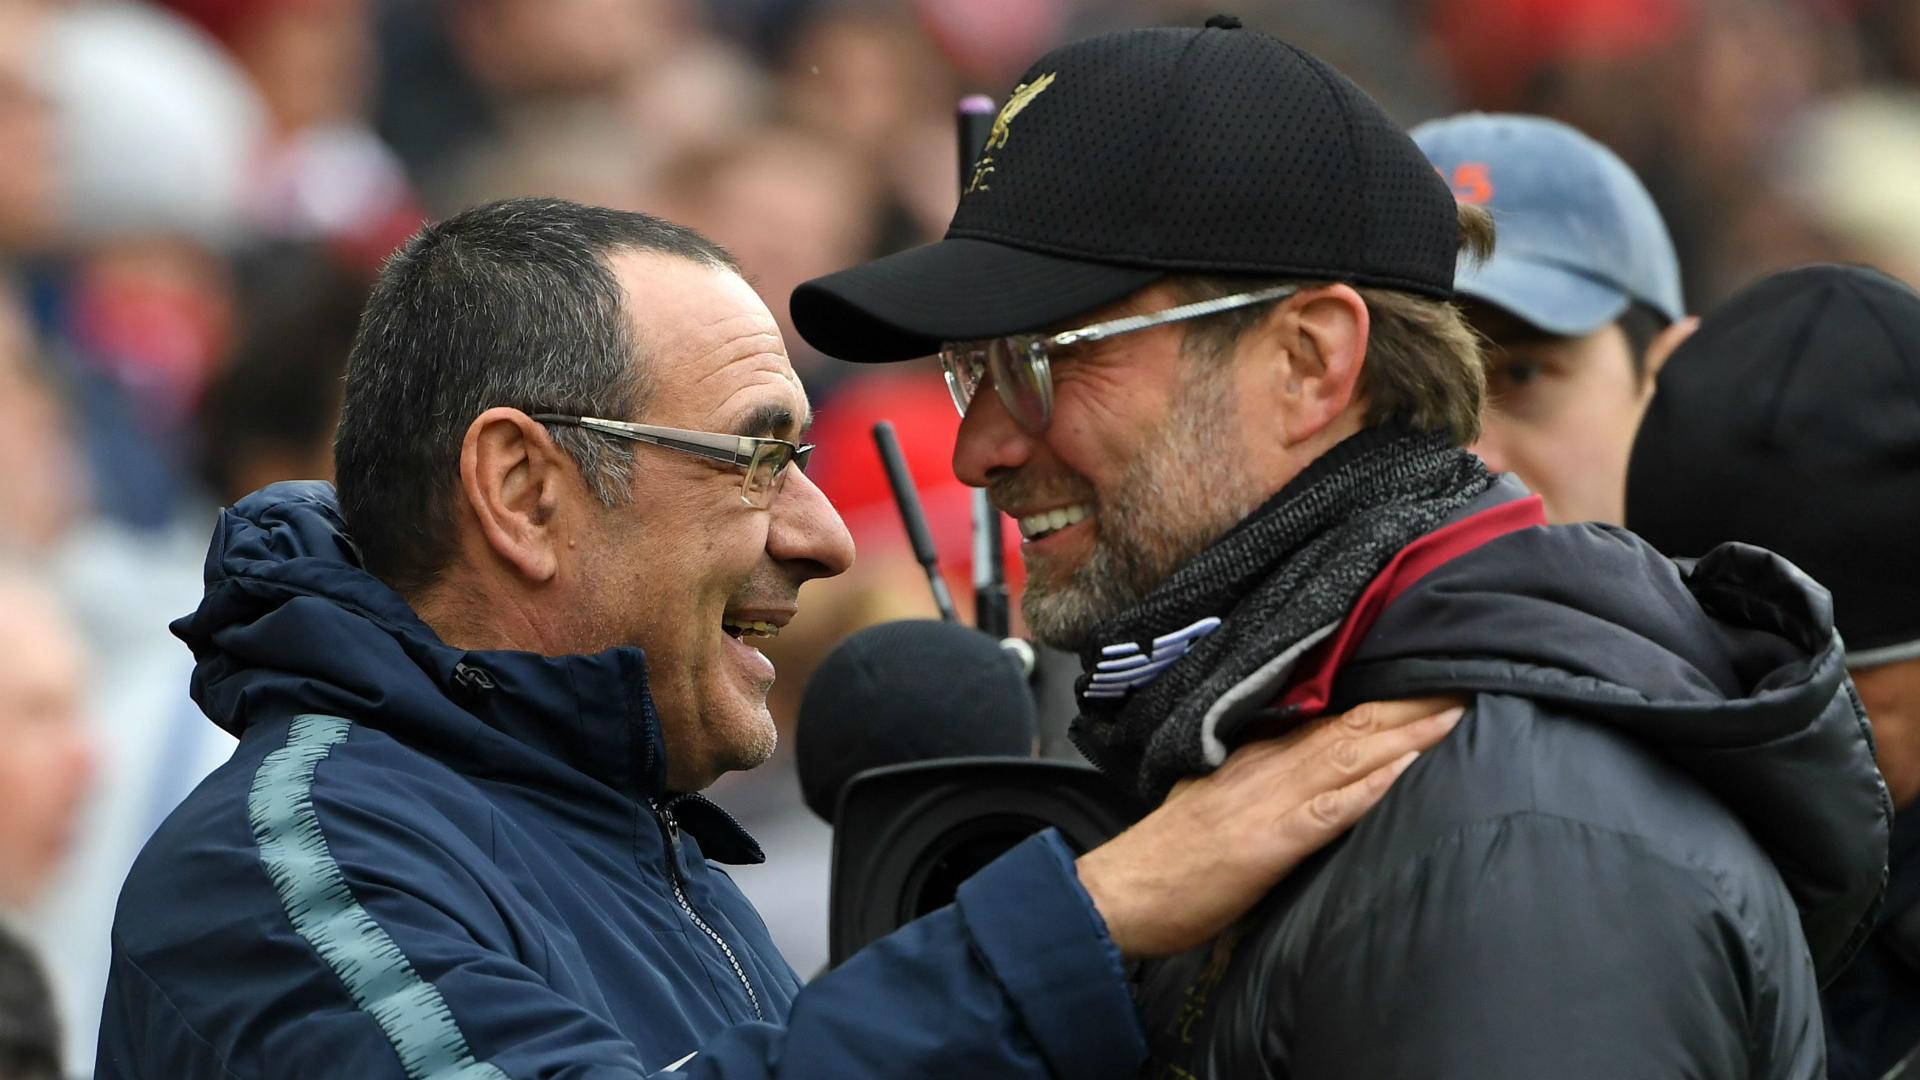 'Jurgen doesn't watch much Serie A!' - Sarri laughs off Klopp claim Juventus are Champions League favourites